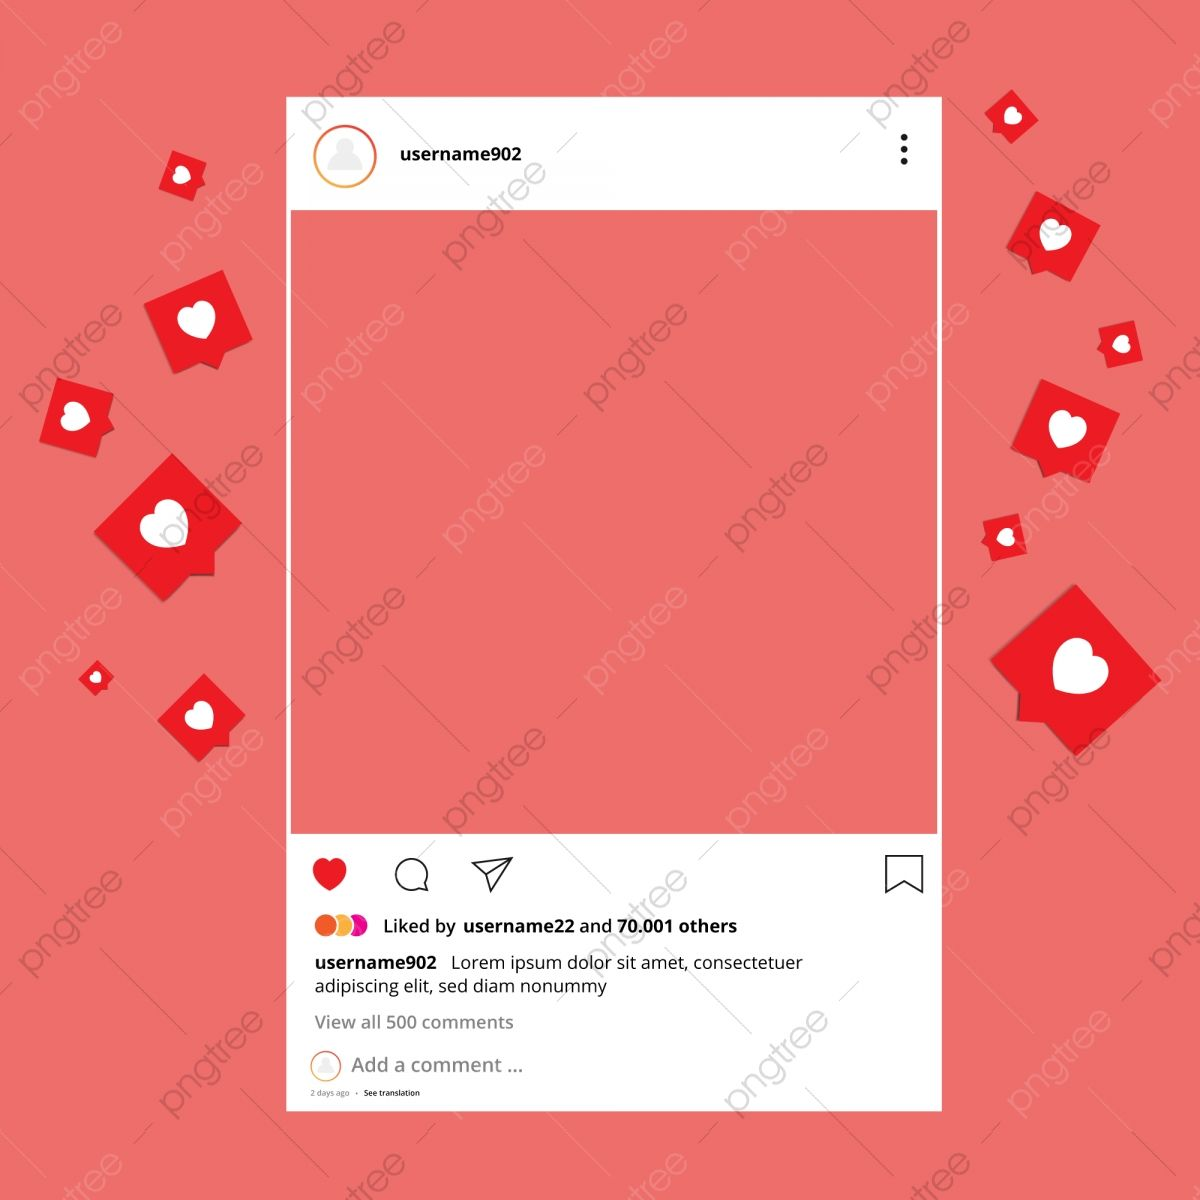 Frame Interface With Love Or Heart Emojis Ig Interface Interface Frame Png Png And Vector With Transparent Background For Free Download Instagram Frame Template Instagram Frame Instagram Logo